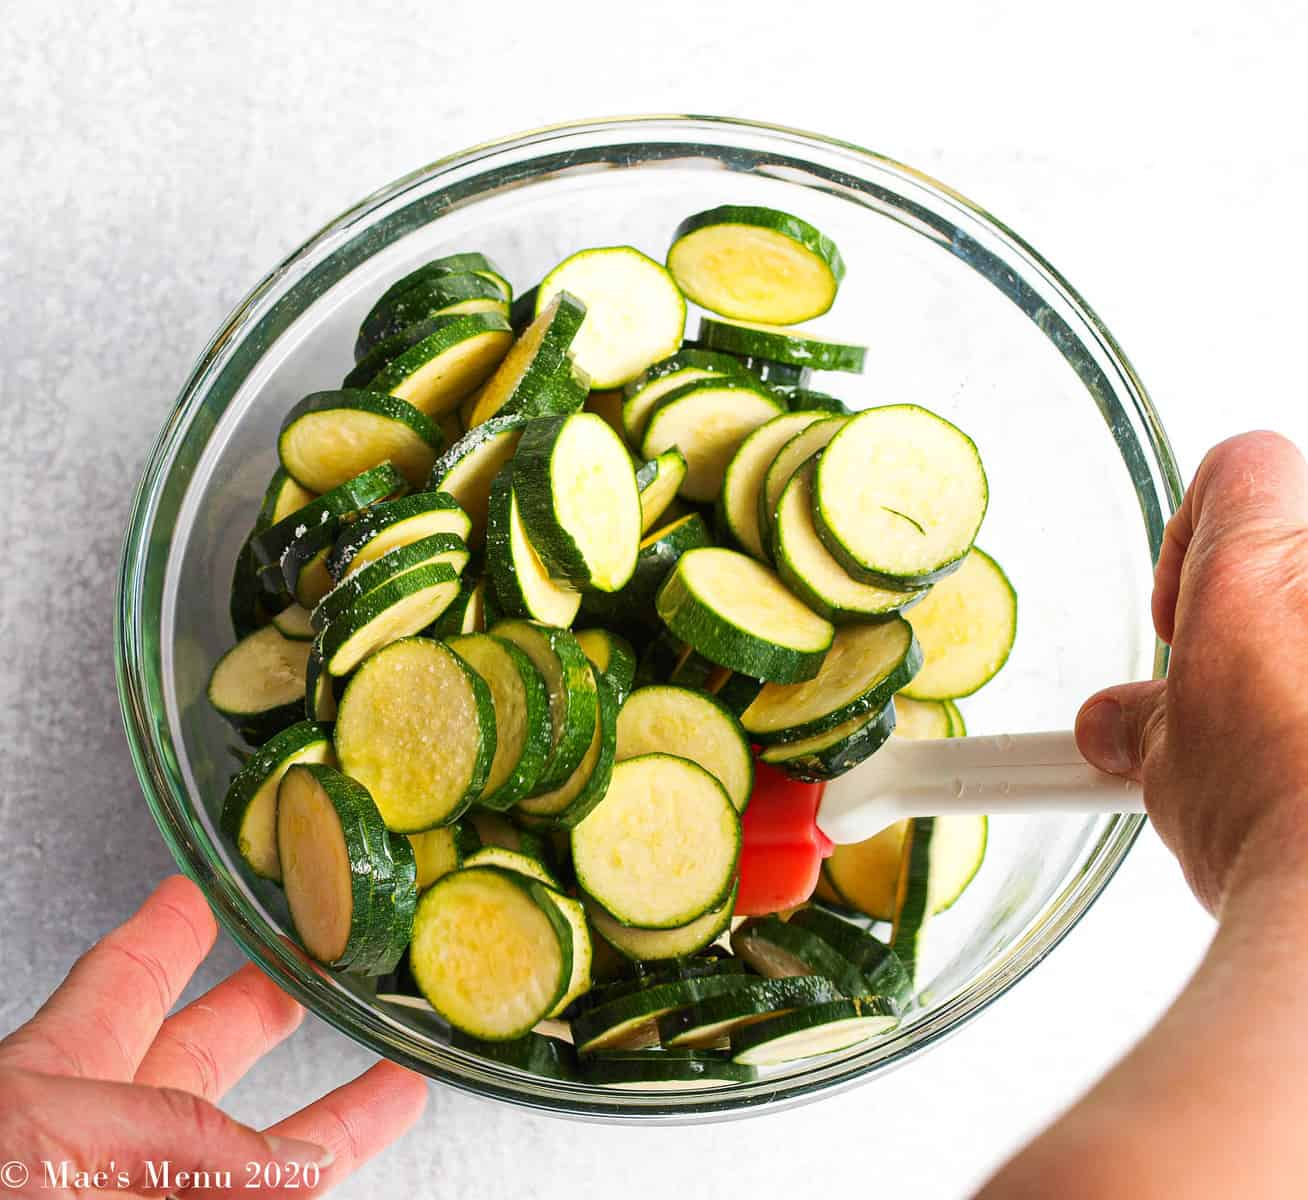 Stirring a bowl of zucchini coins in a mixing bowl